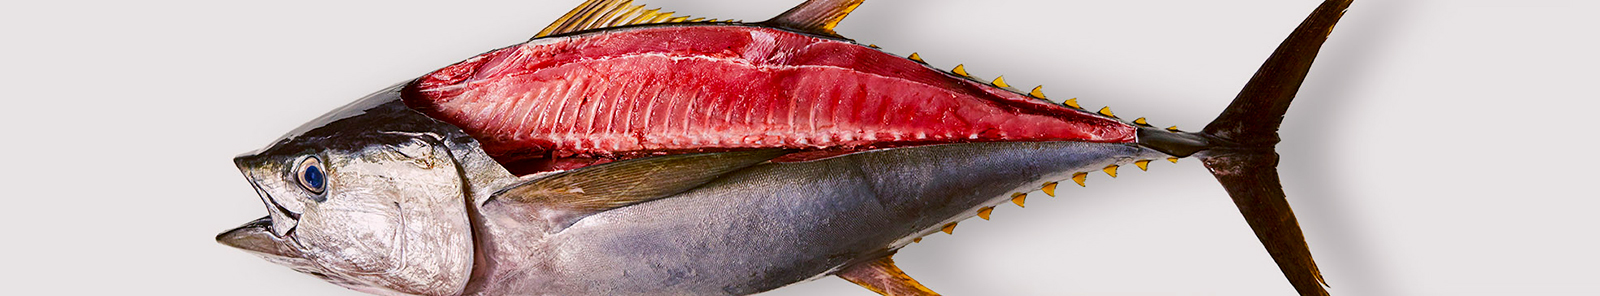 maldives yellowfin tuna suppliers ensis fisheries